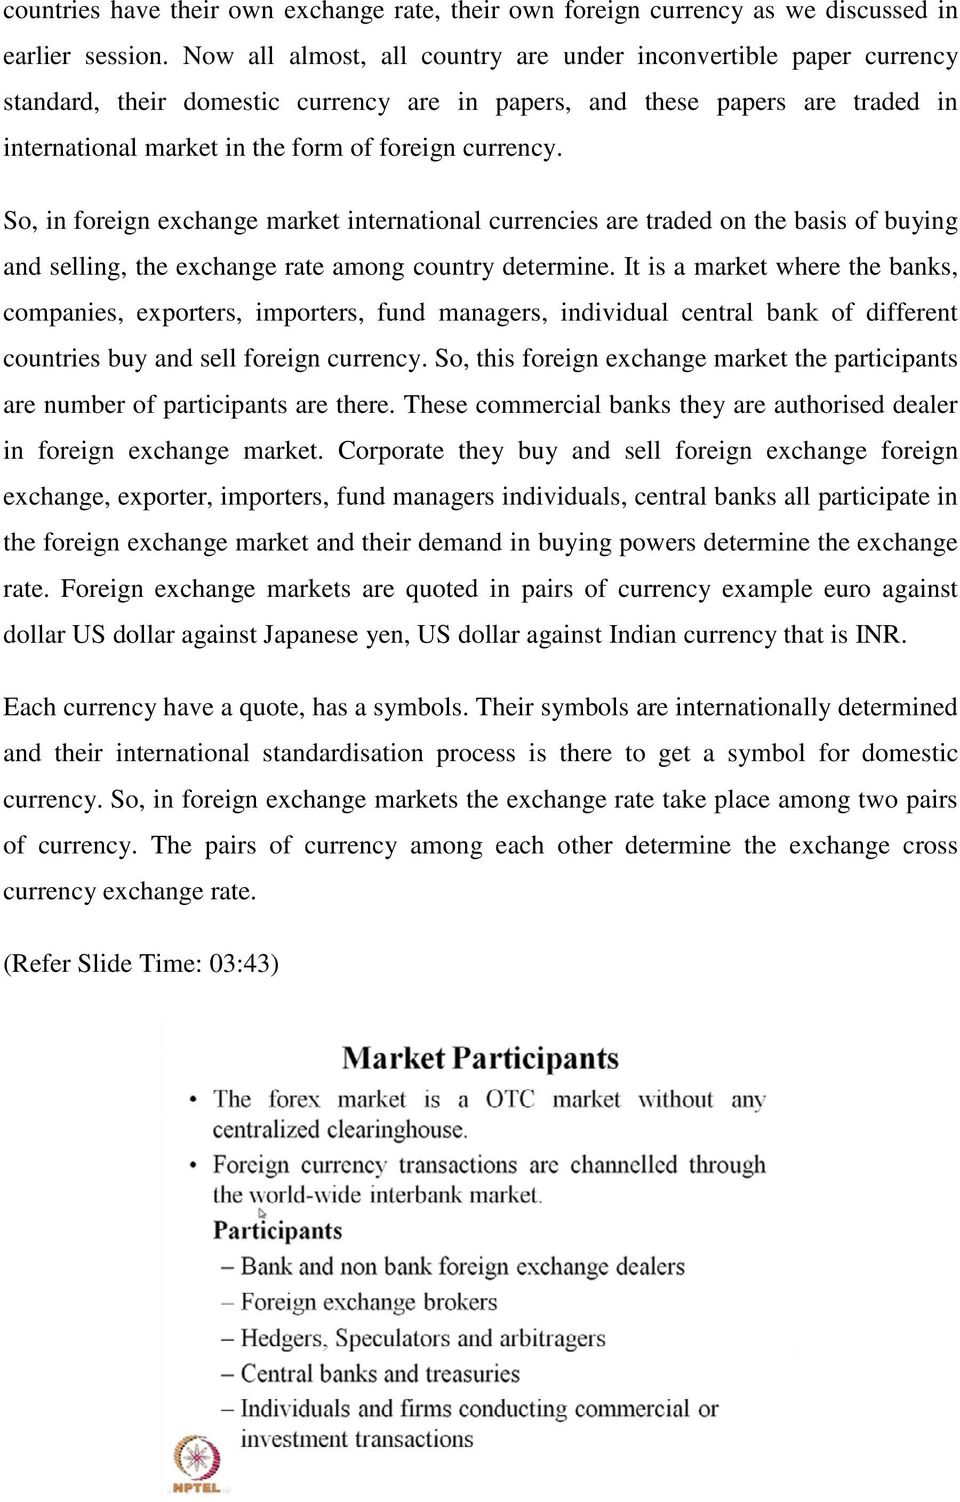 So, in foreign exchange market international currencies are traded on the basis of buying and selling, the exchange rate among country determine.